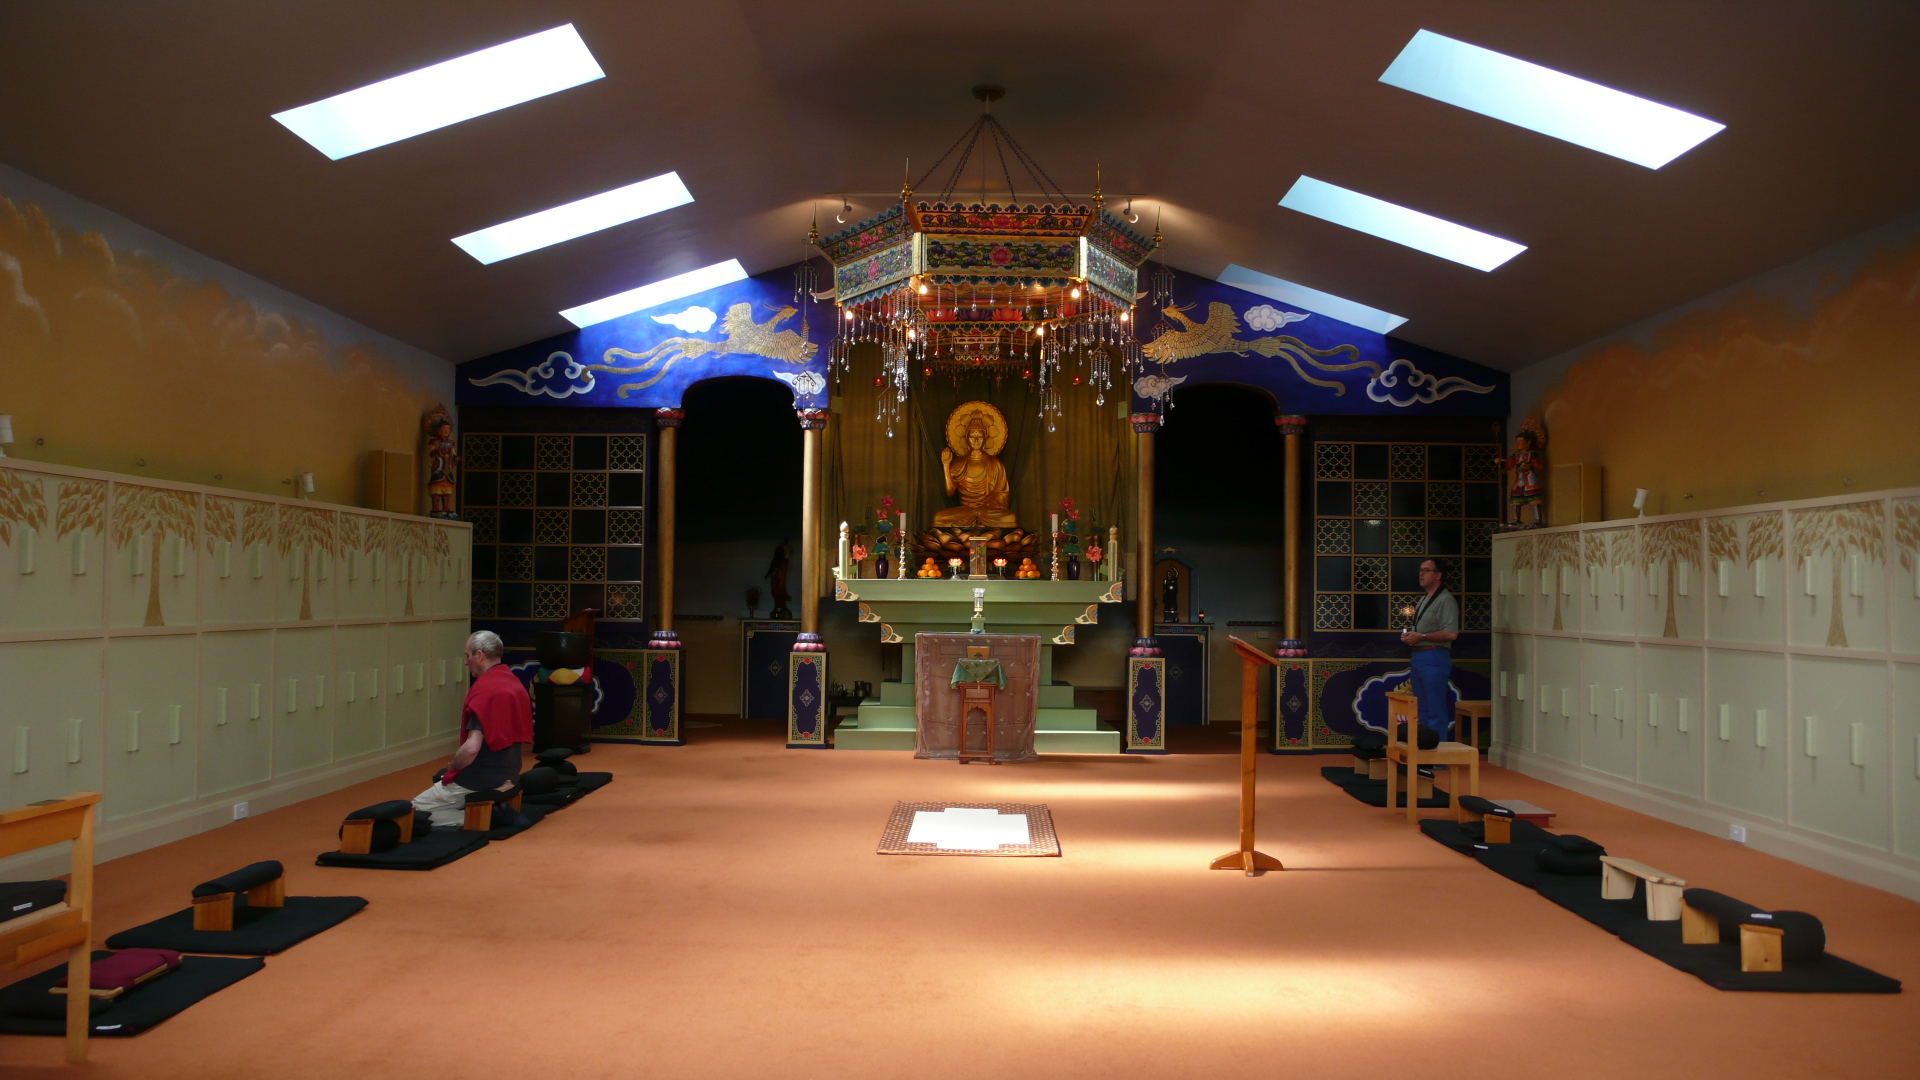 Ceremony Hall of Throssel Hole Buddhist Abbey, England